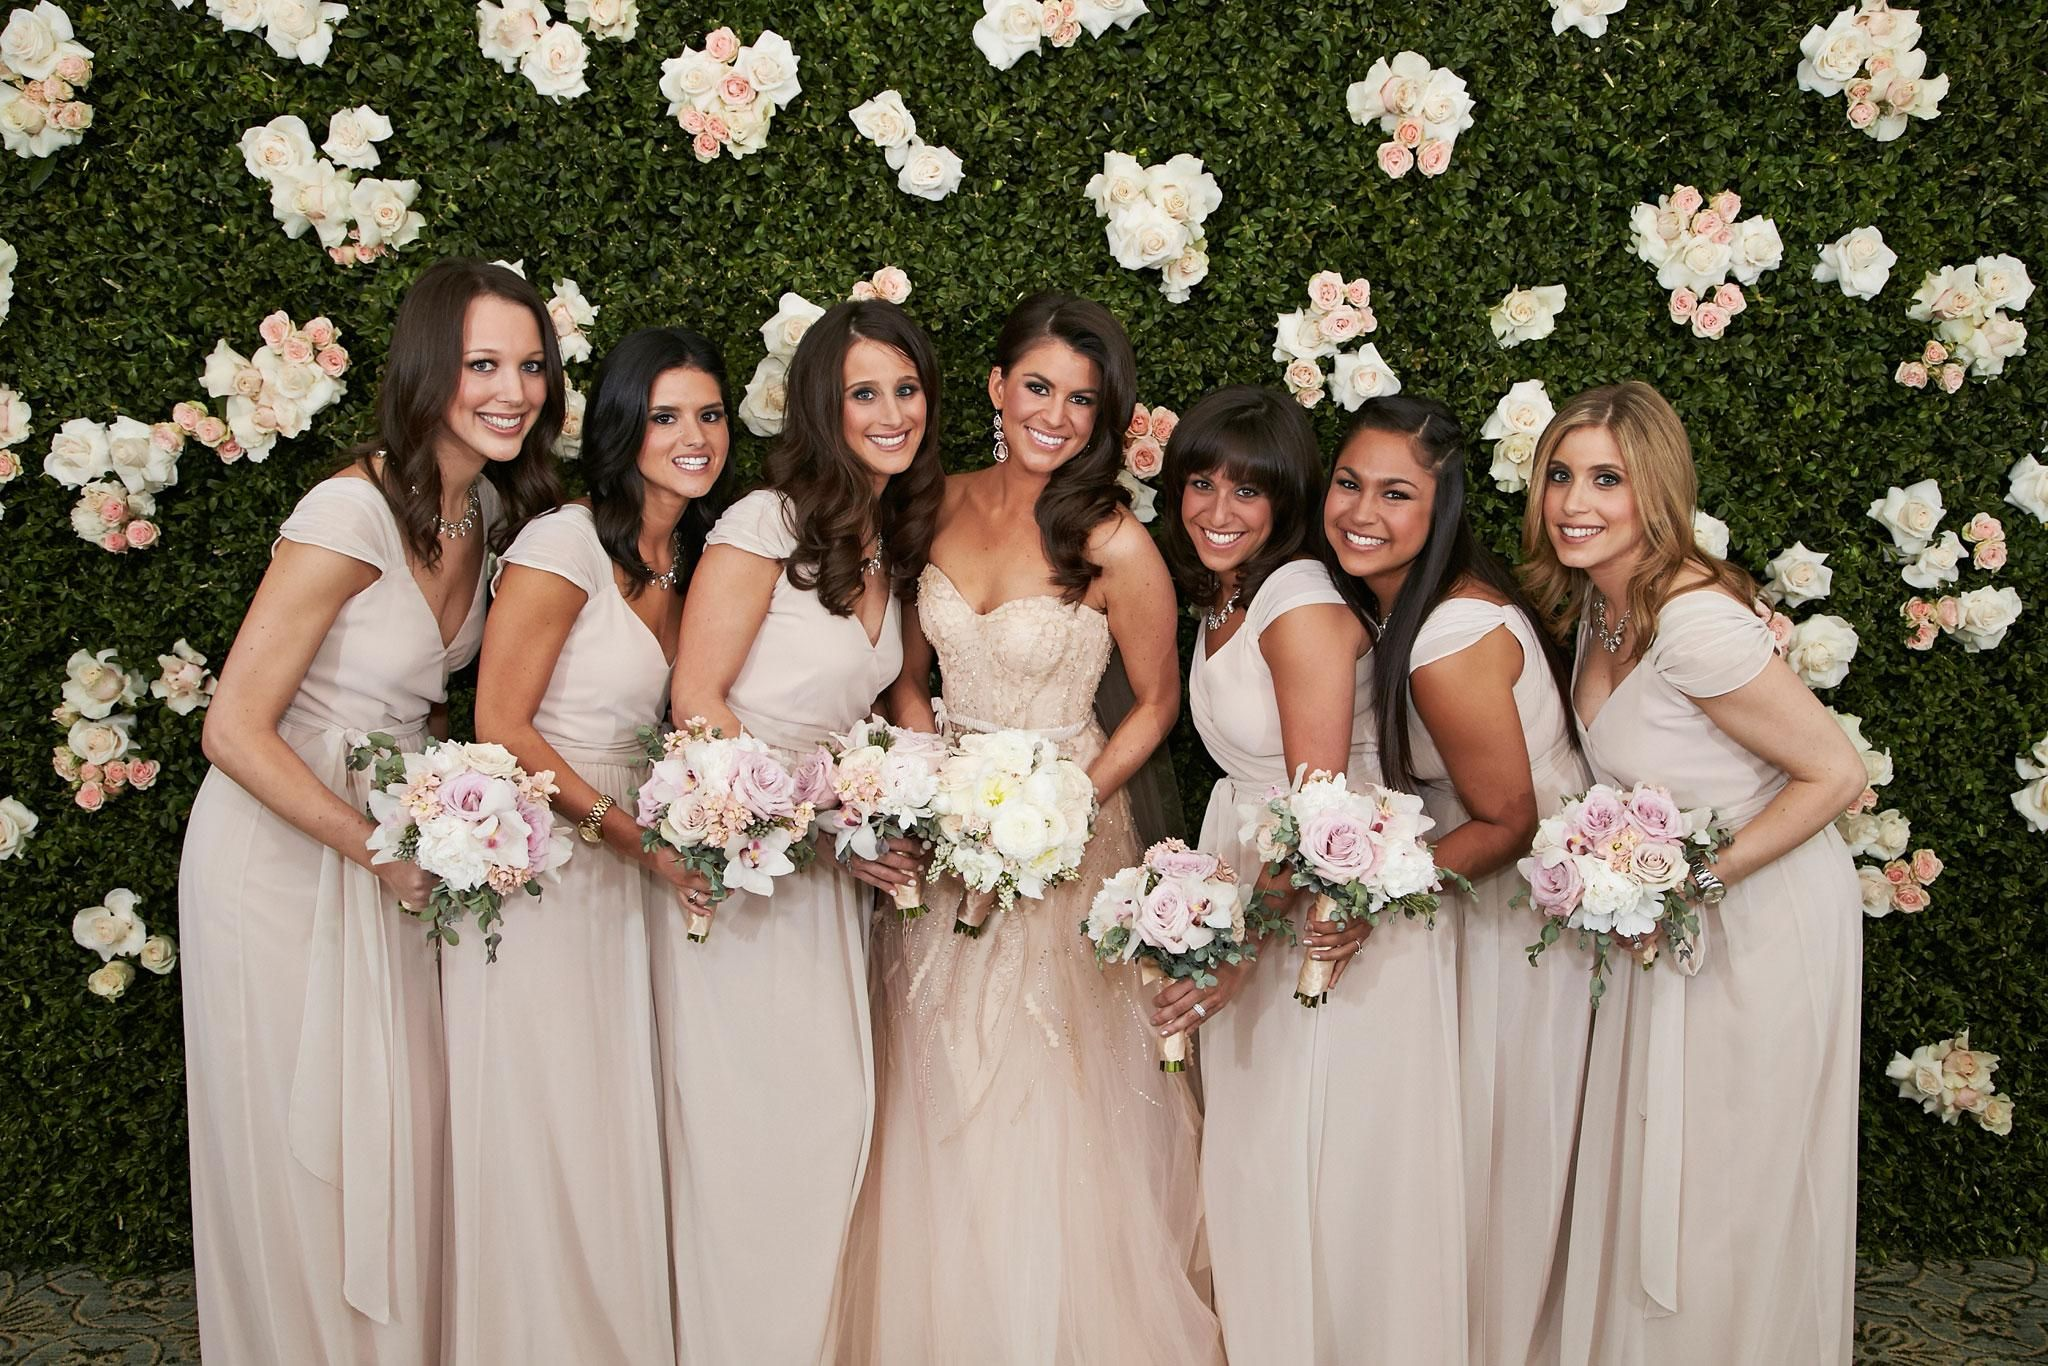 Ceremony by joanna august gowns in all tomorrows parties a joanna august all tomorrows parties bridesmaid dress color ombrellifo Images